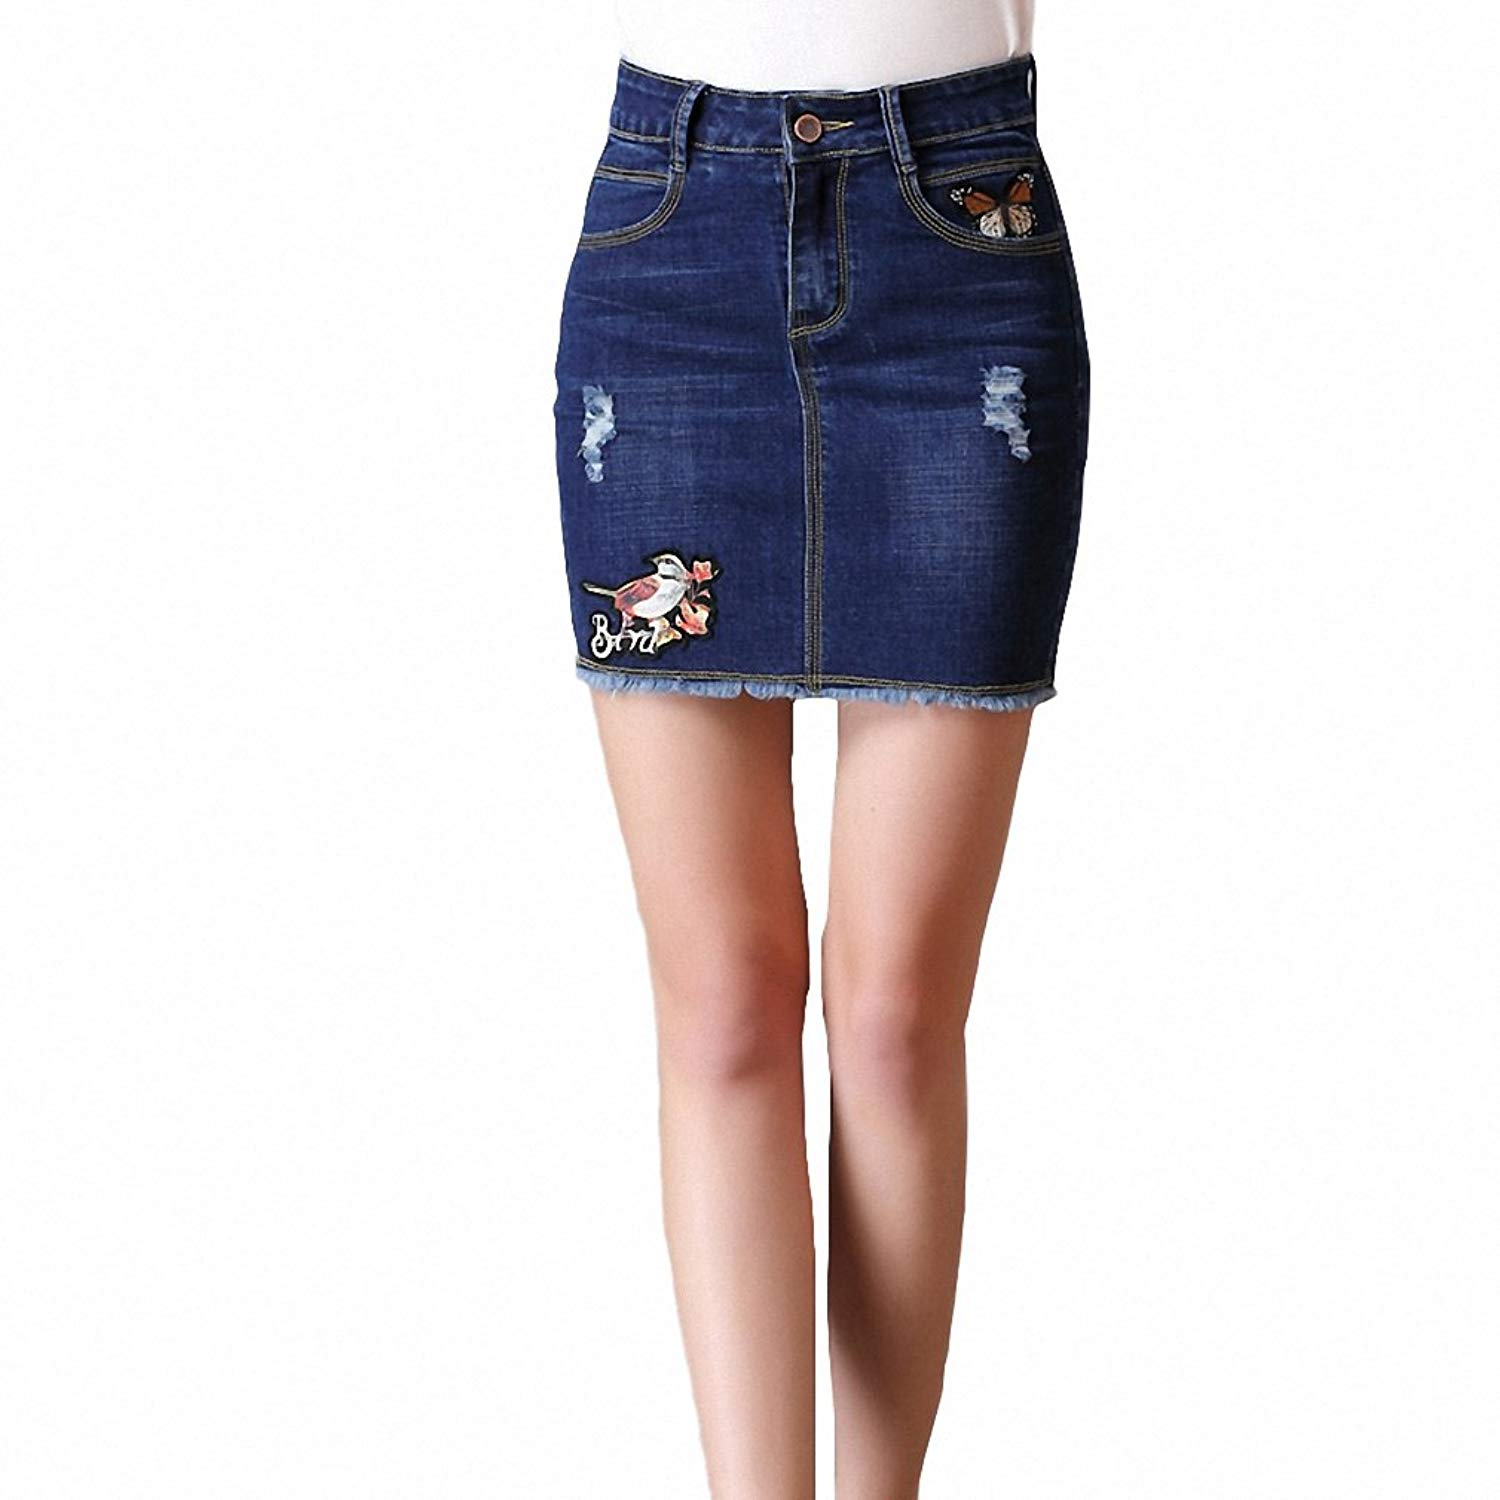 497f71be3d28 Women Denim Pencil Skirt NEW Summer Ladies Butterfly Embroidery Ripped  Jeans Skirts High Waist Short Mini